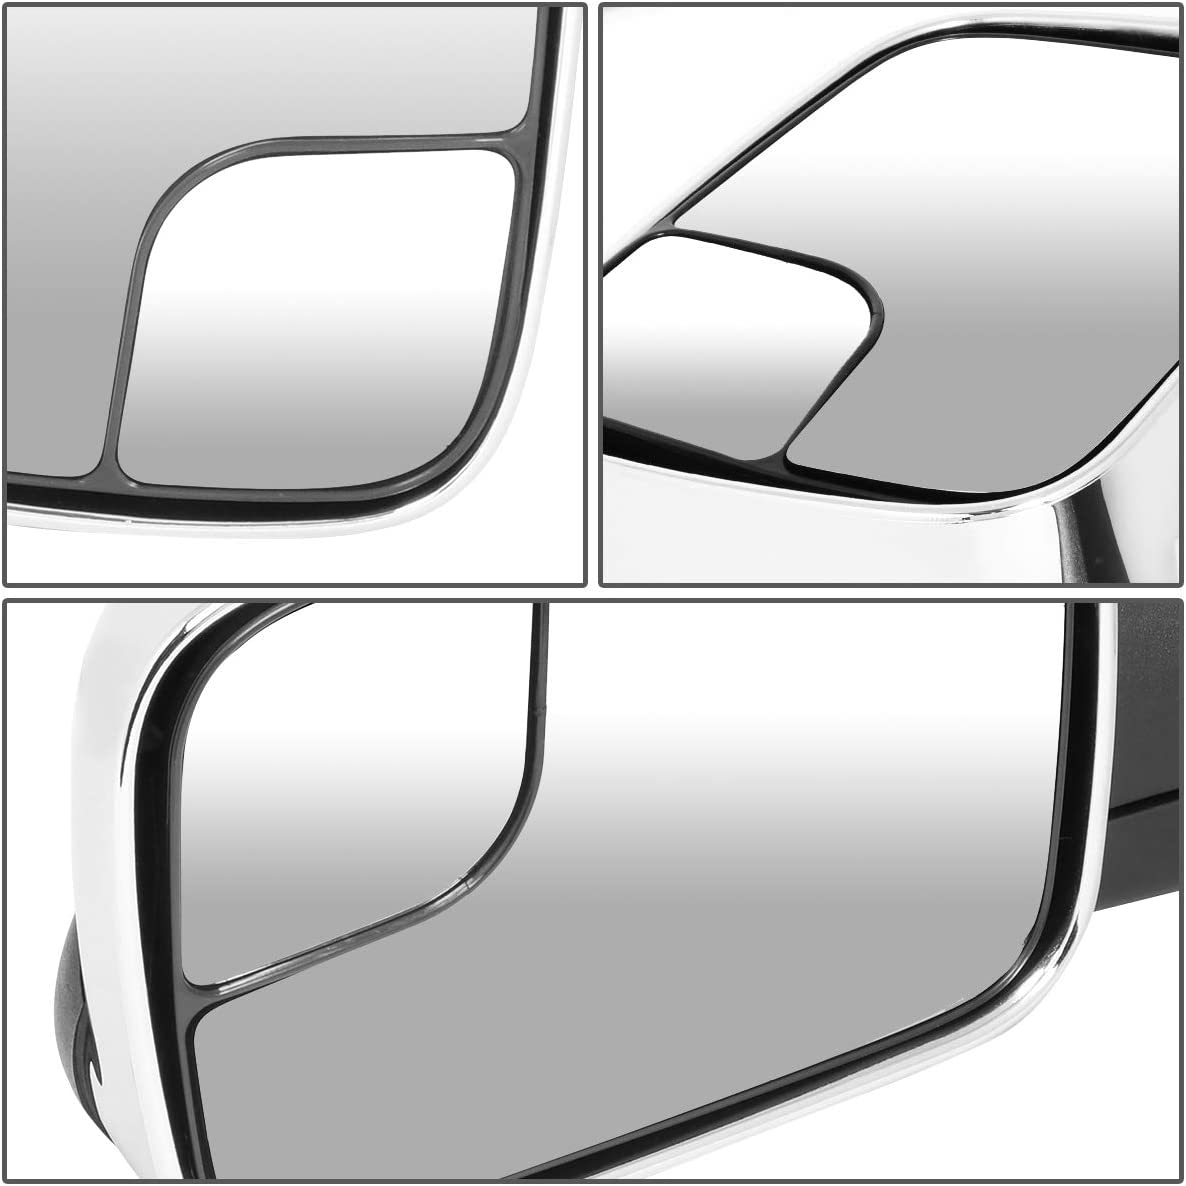 DNA MOTORING TWM-011-T222-CH Pair Chrome Cover Manual Flip Up Towing Mirror Replacement Chrome//Black